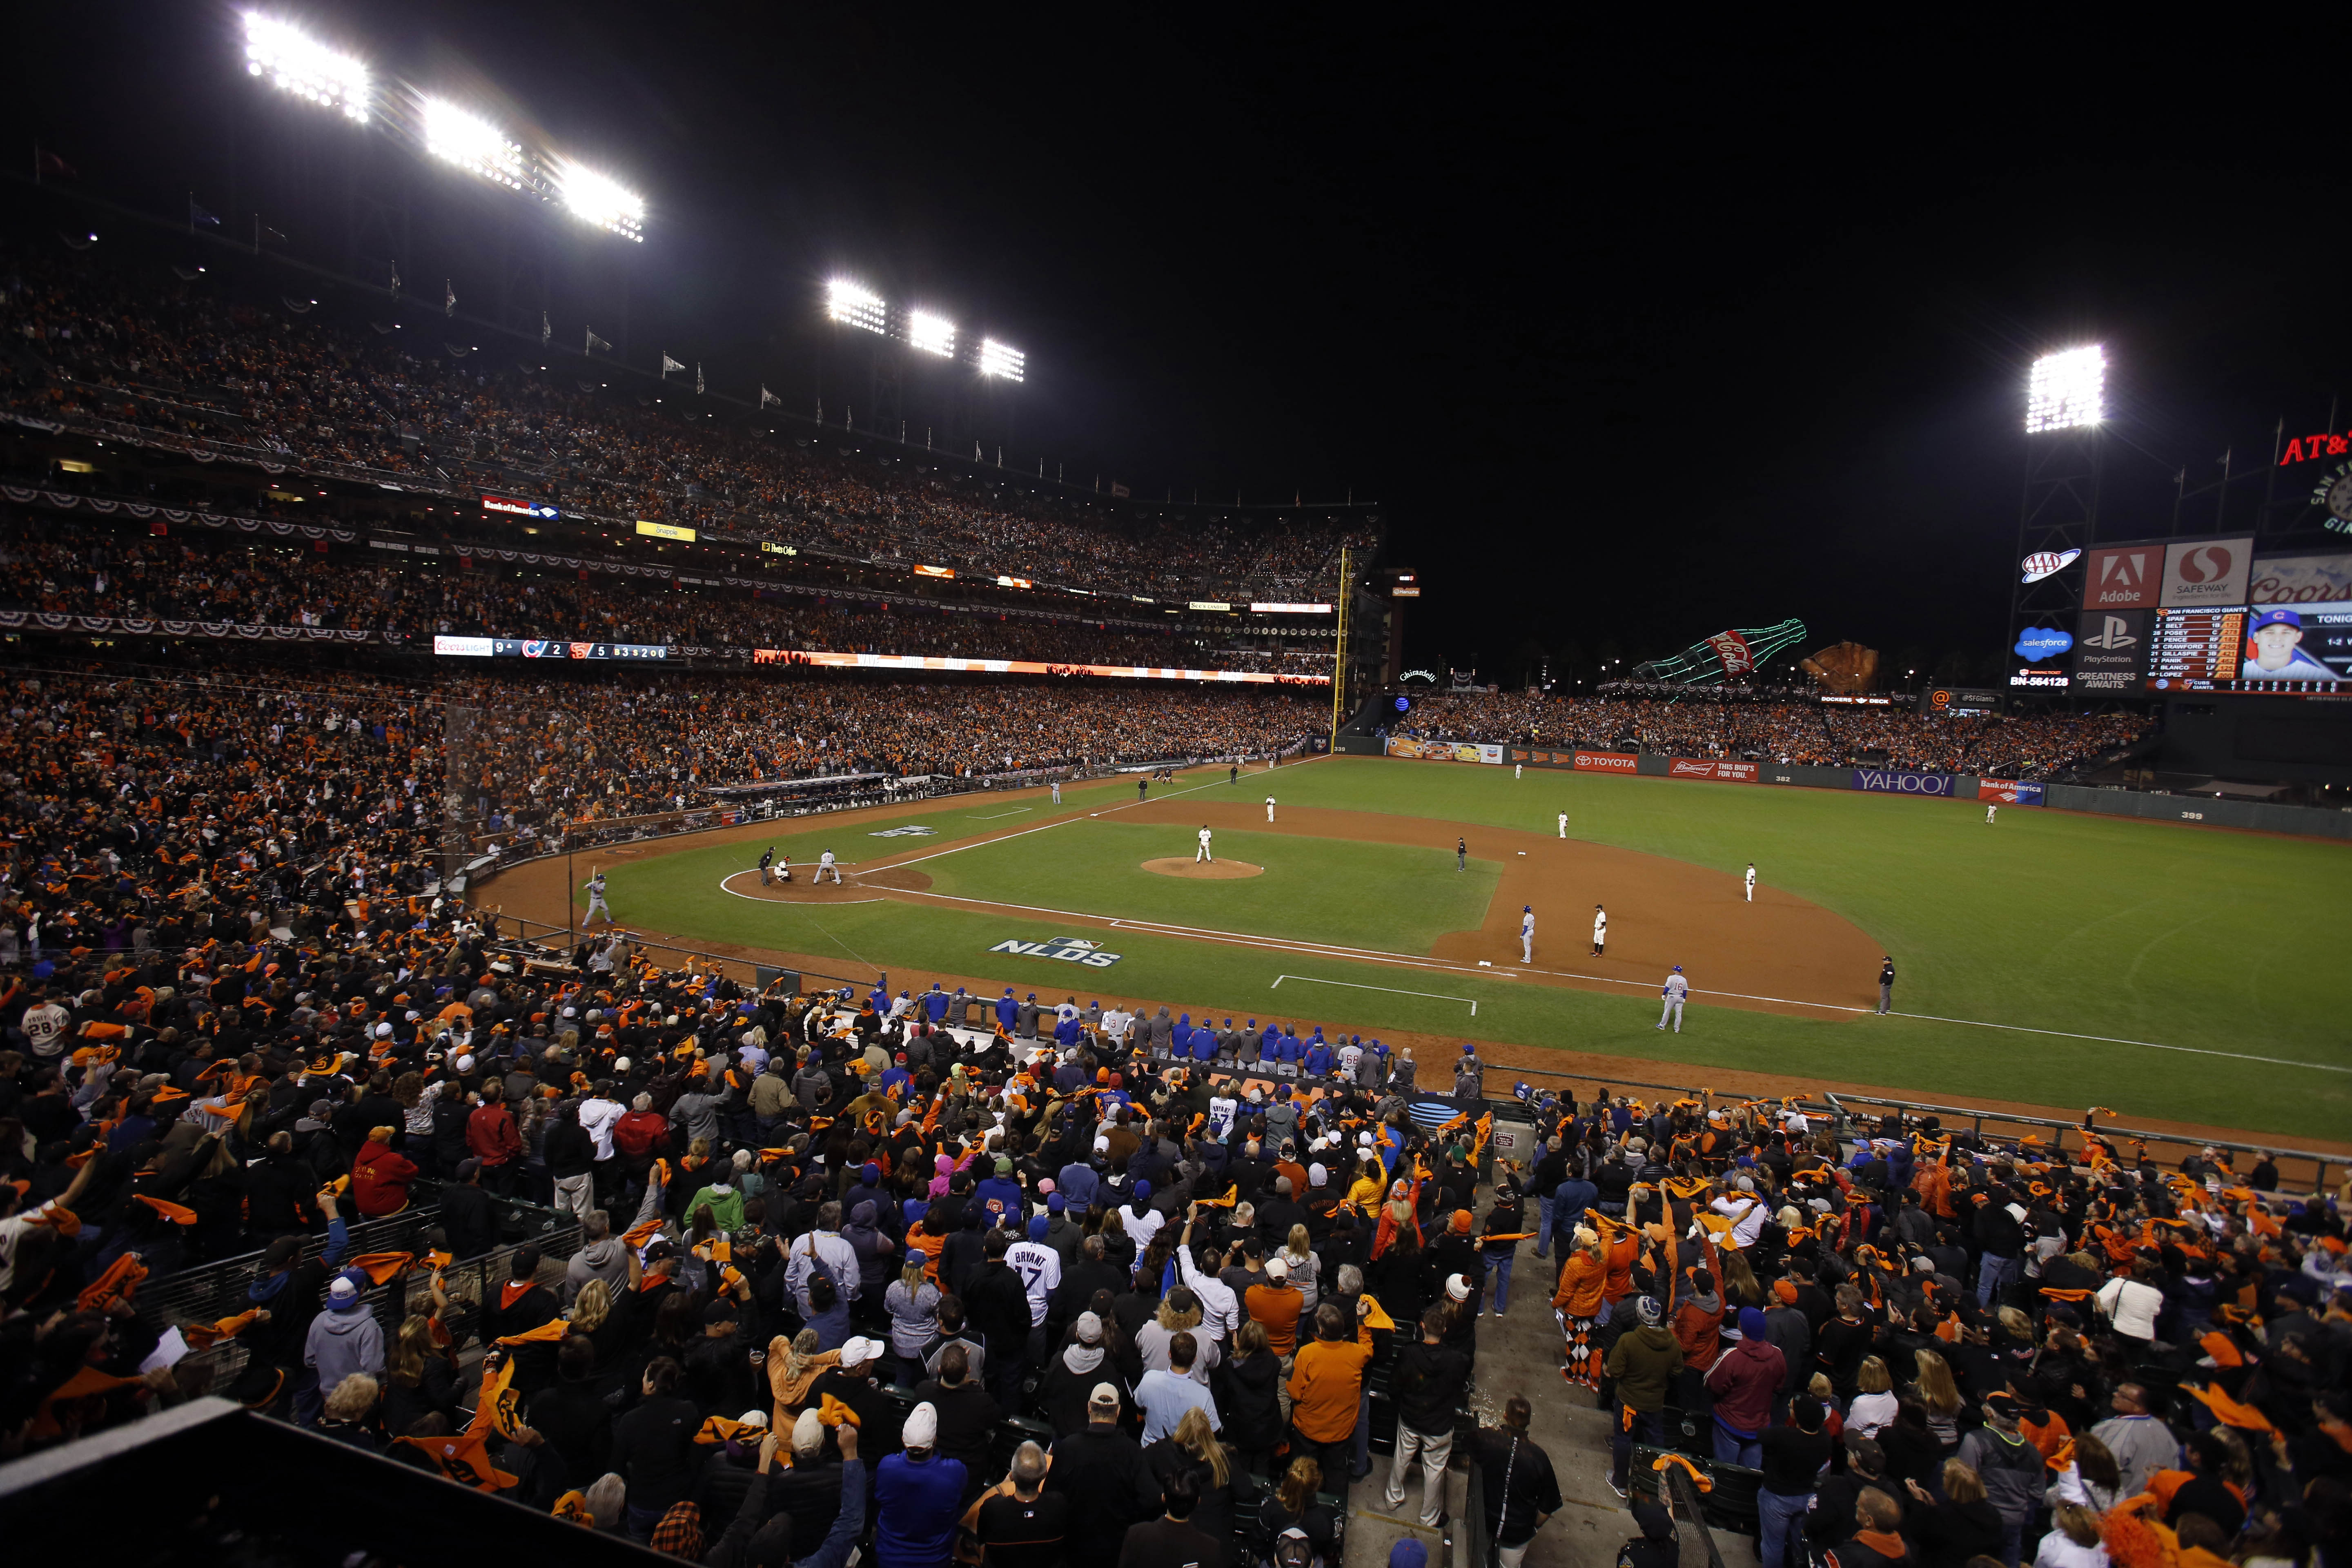 9602886-mlb-nlds-chicago-cubs-at-san-francisco-giants